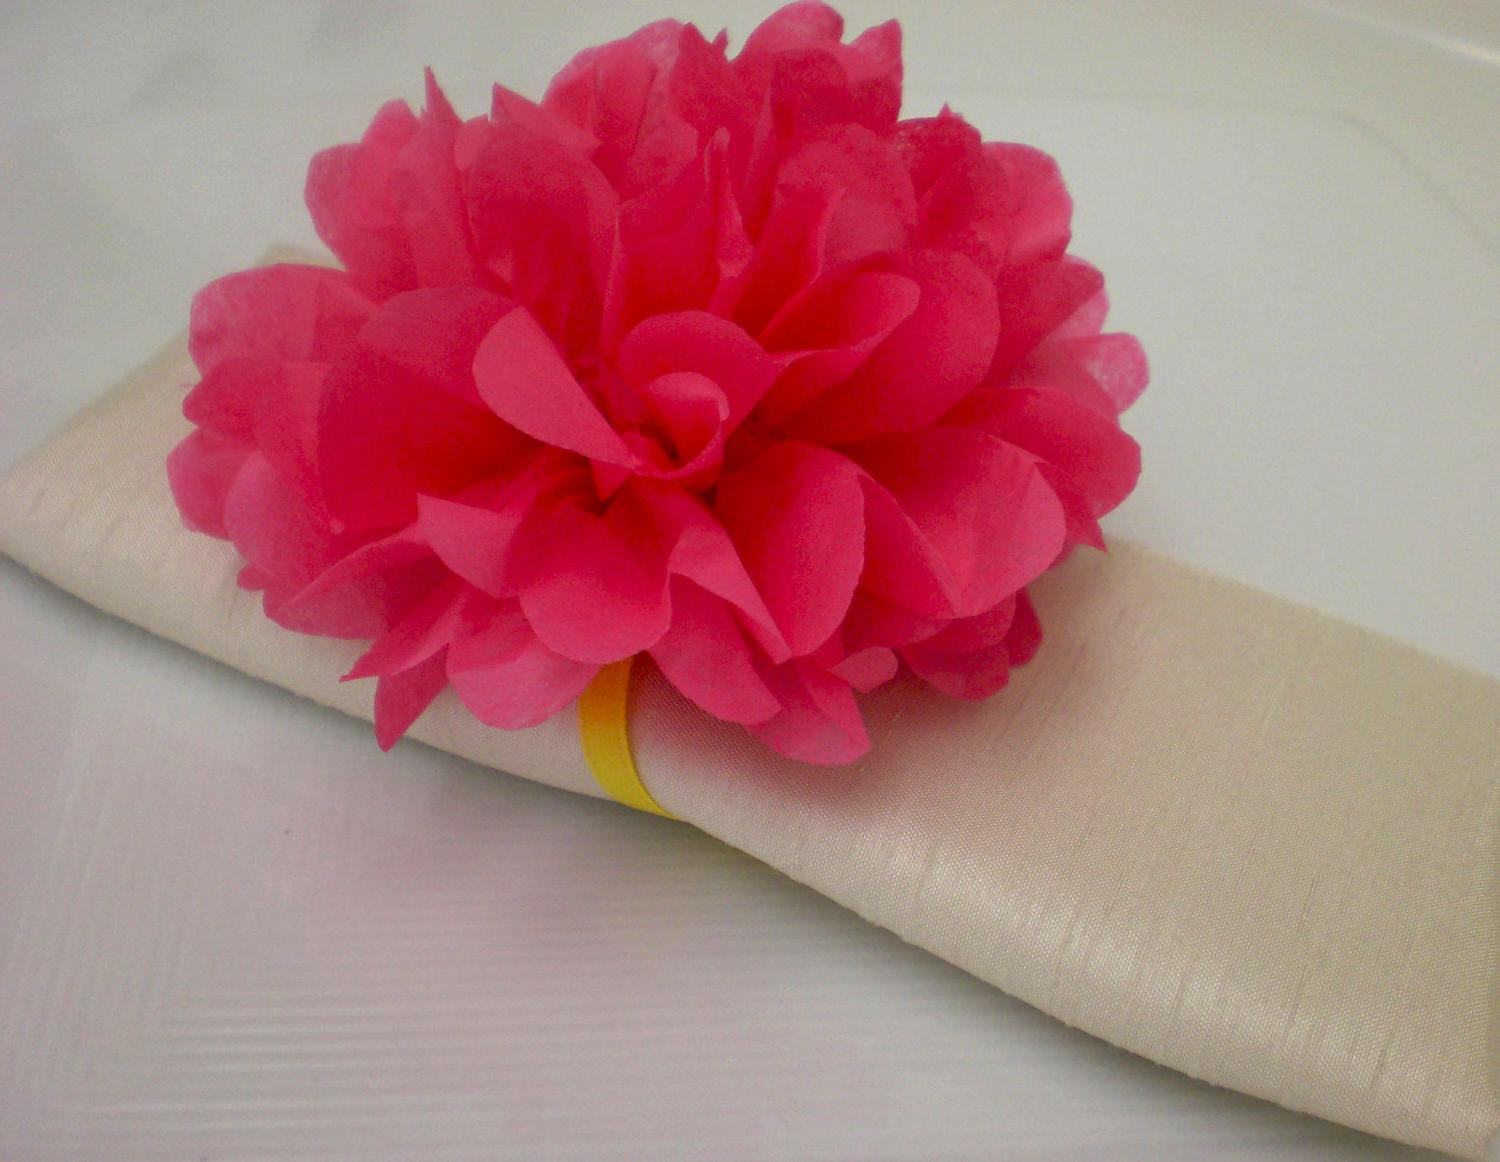 Chebrias Blog Wedding Decoration 40 Tissue Paper Flower Napkin